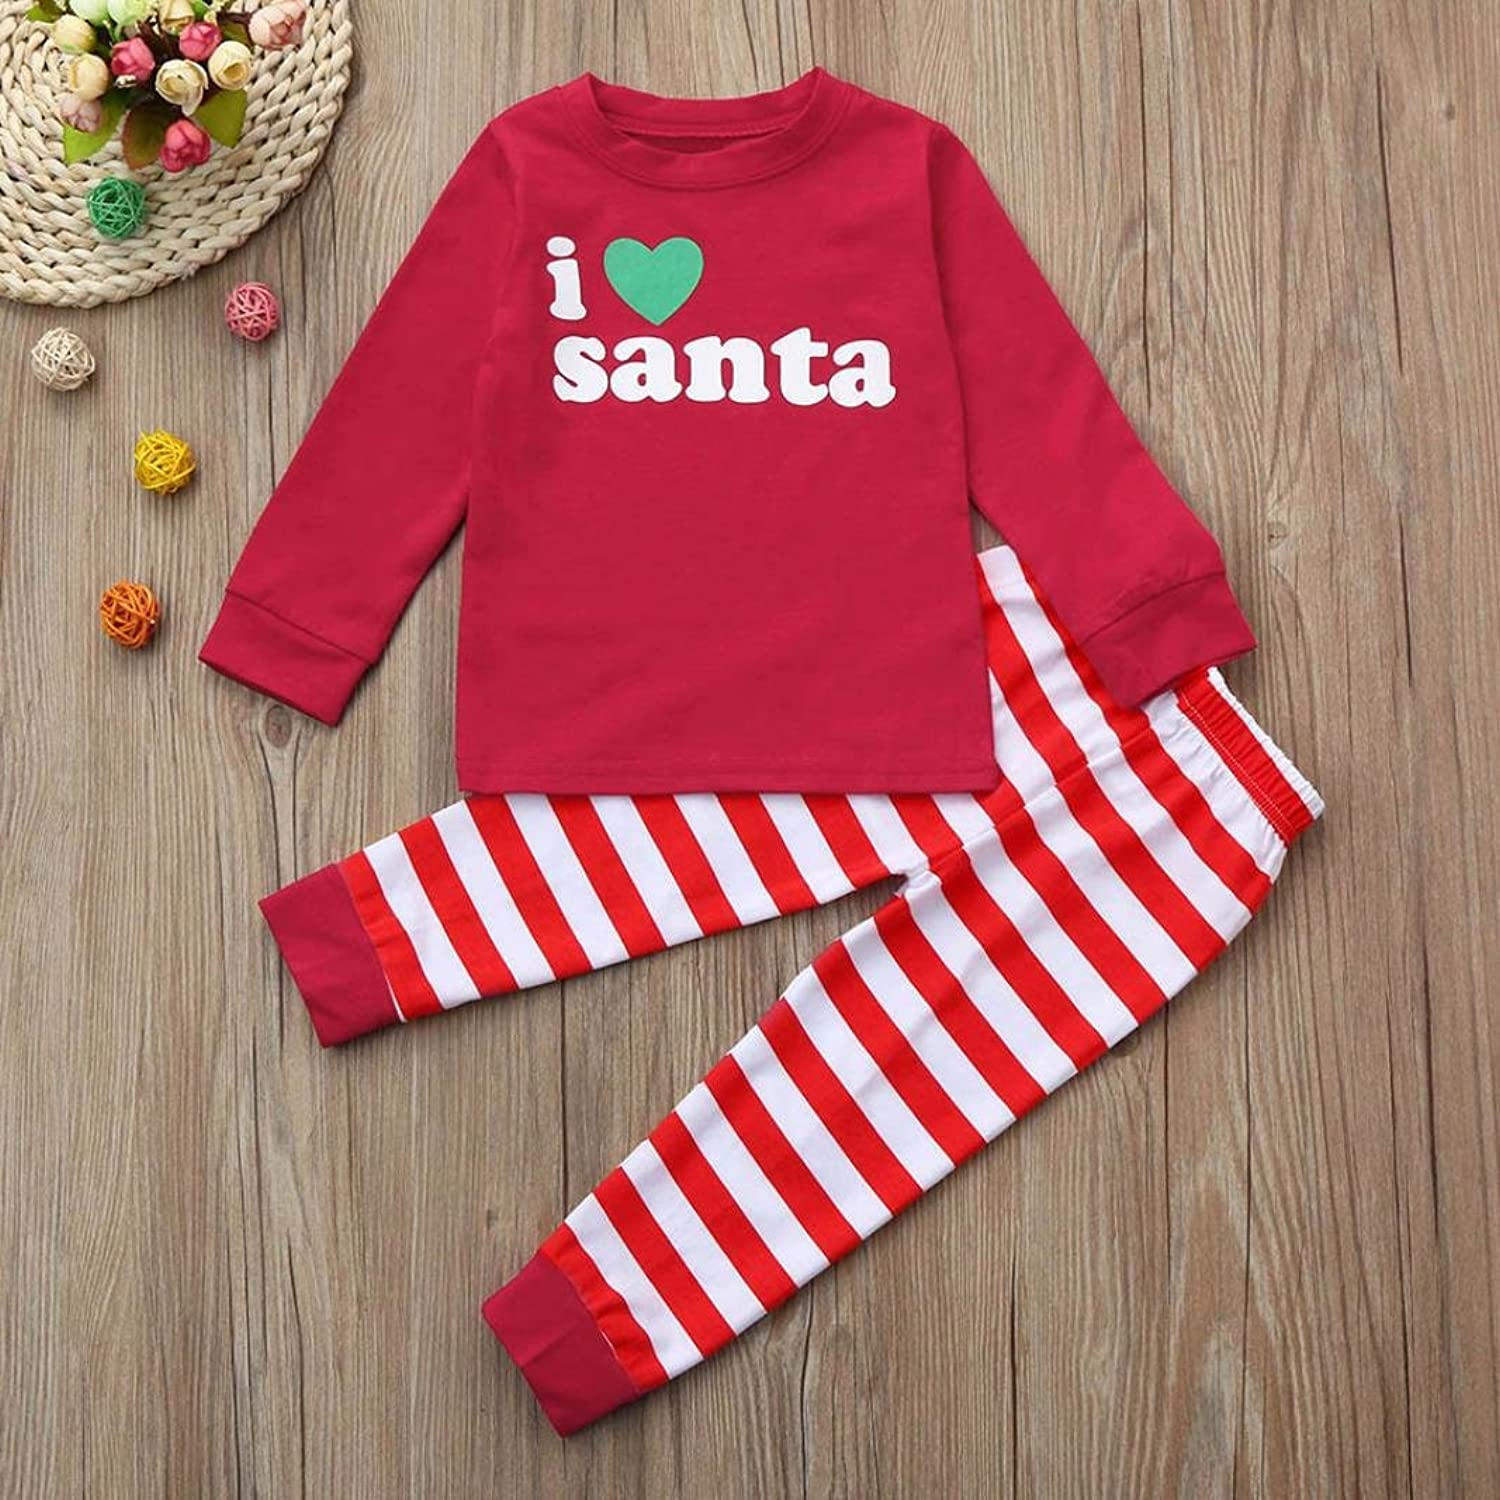 Amazon.com: Christmas Kids Toddler Baby Girl Boy Letter Top+Stripe Pants Outfit Clothes Set by CSSD: Clothing